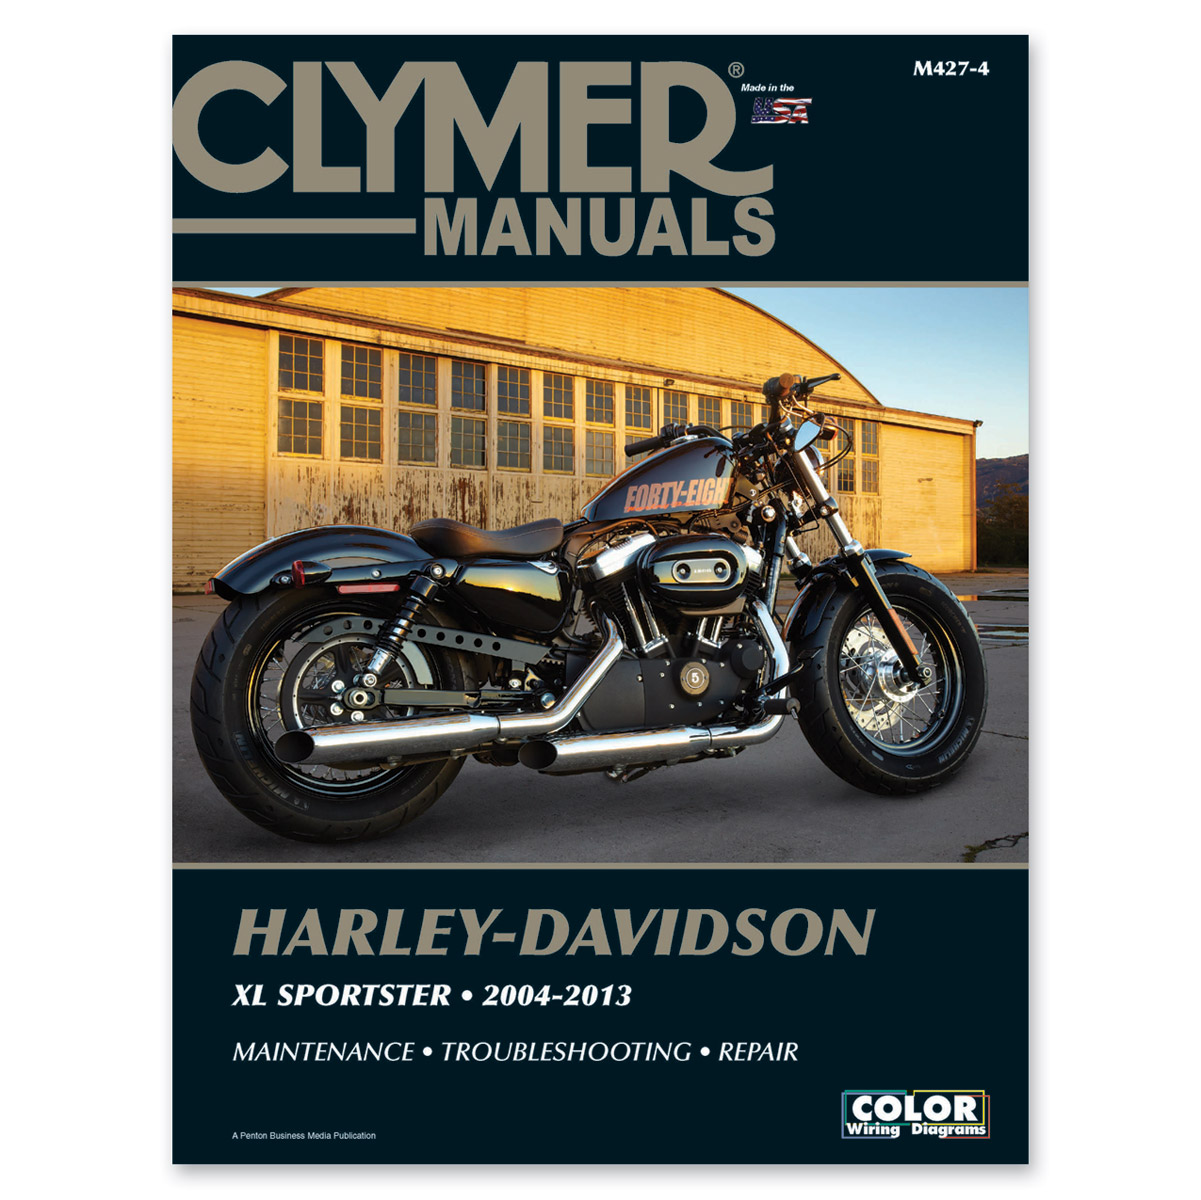 clymer sportster repair manual | 446-613 | j&p cycles